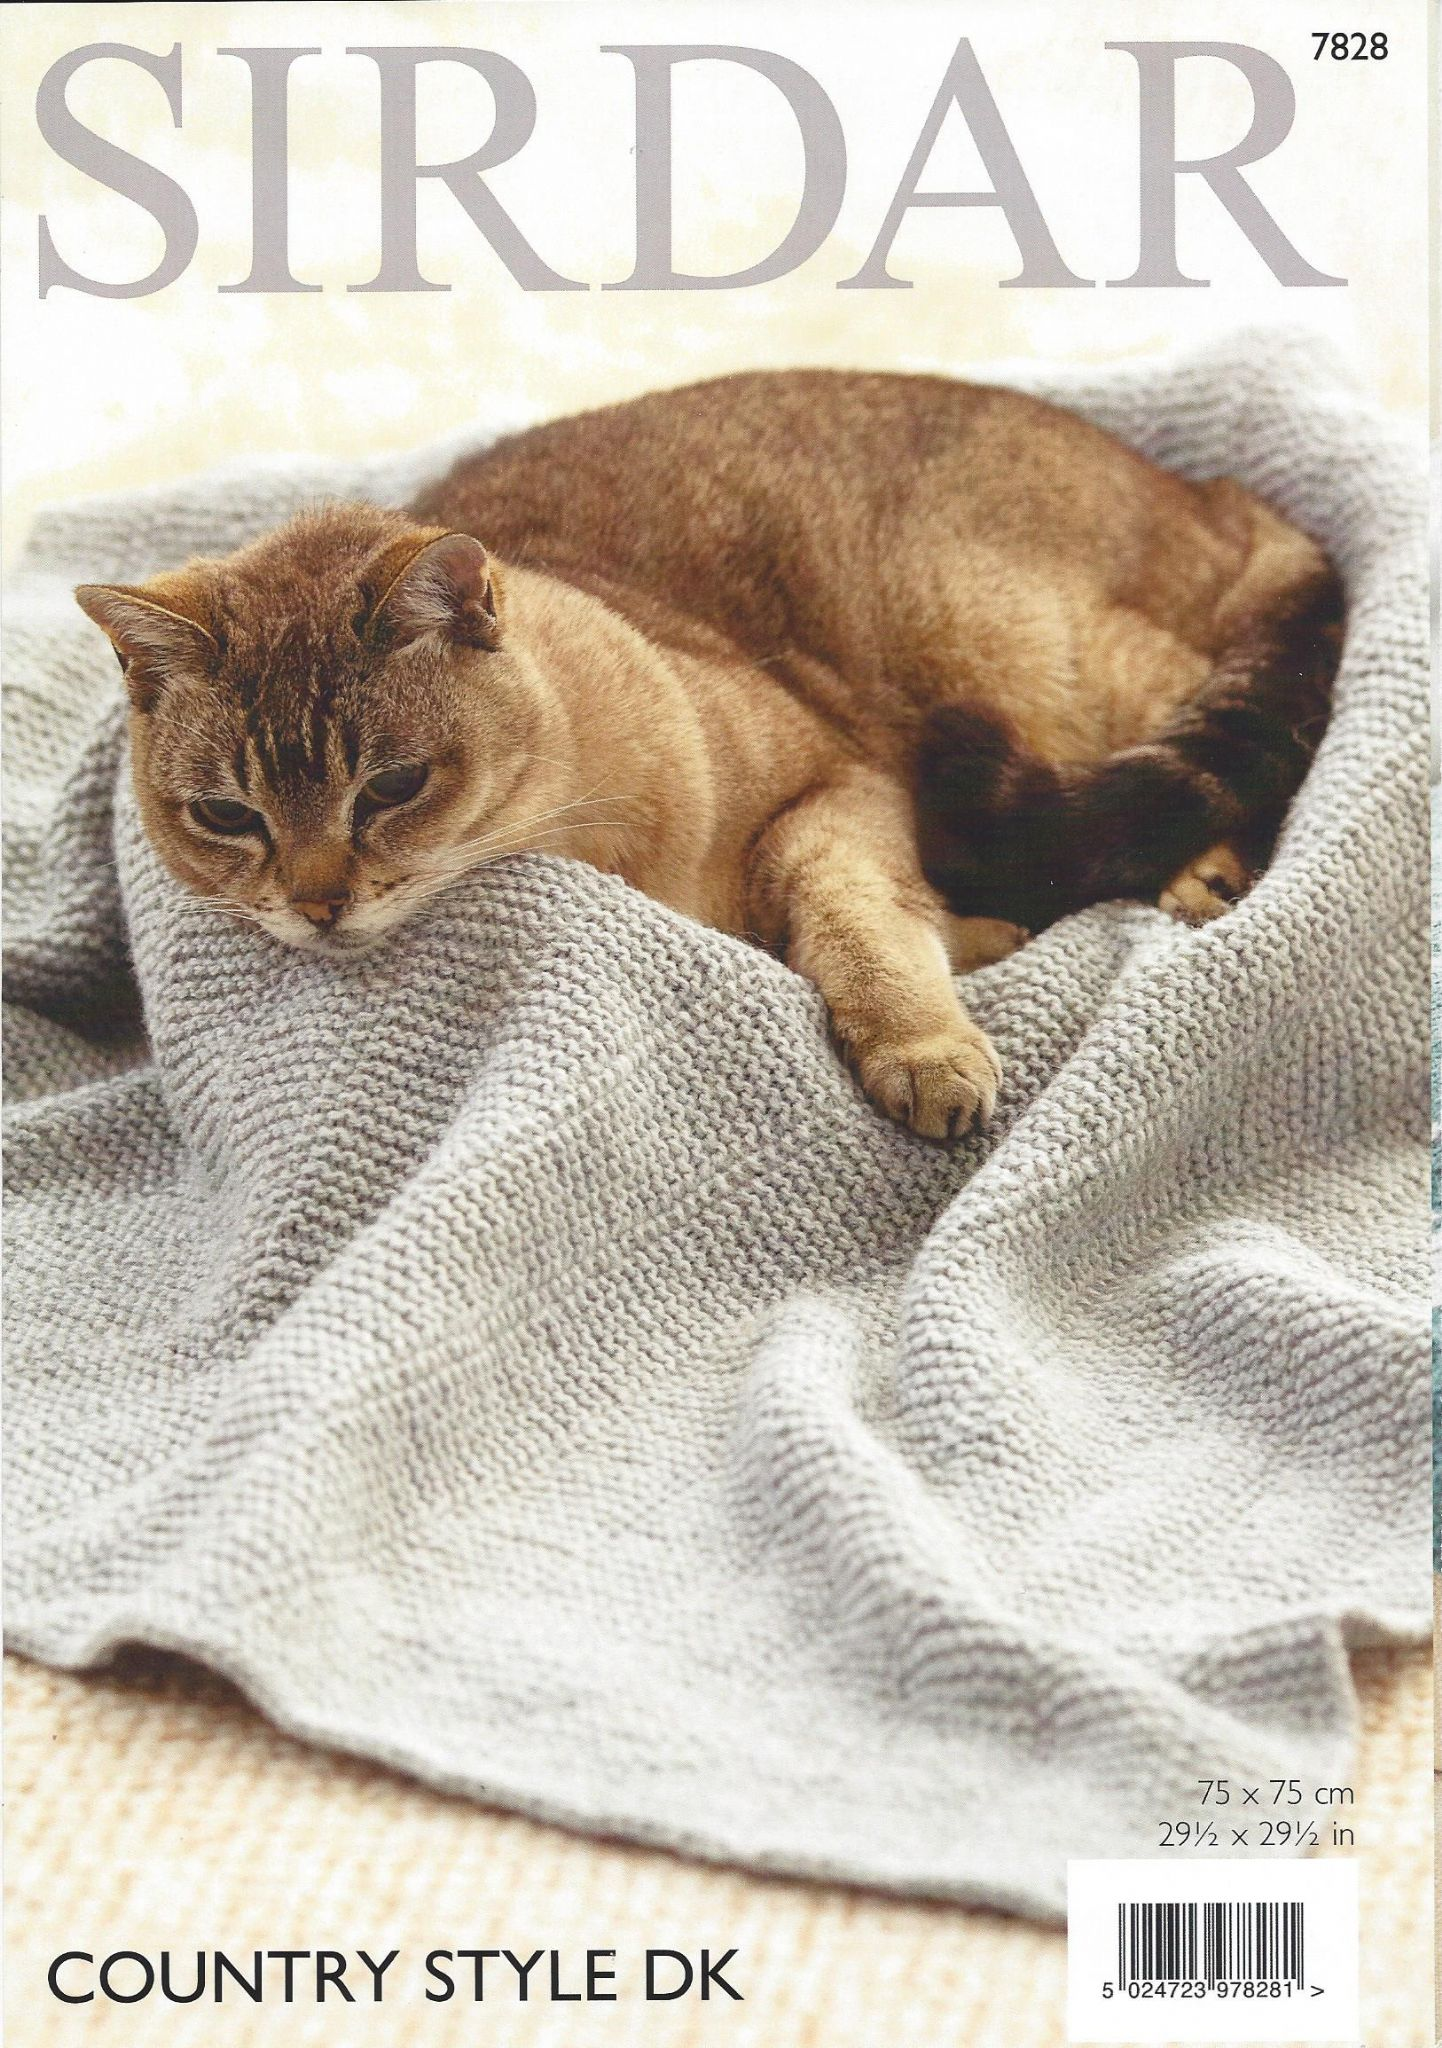 Sirdar Country Style DK - 7828 Cat Blankets Knitting Pattern